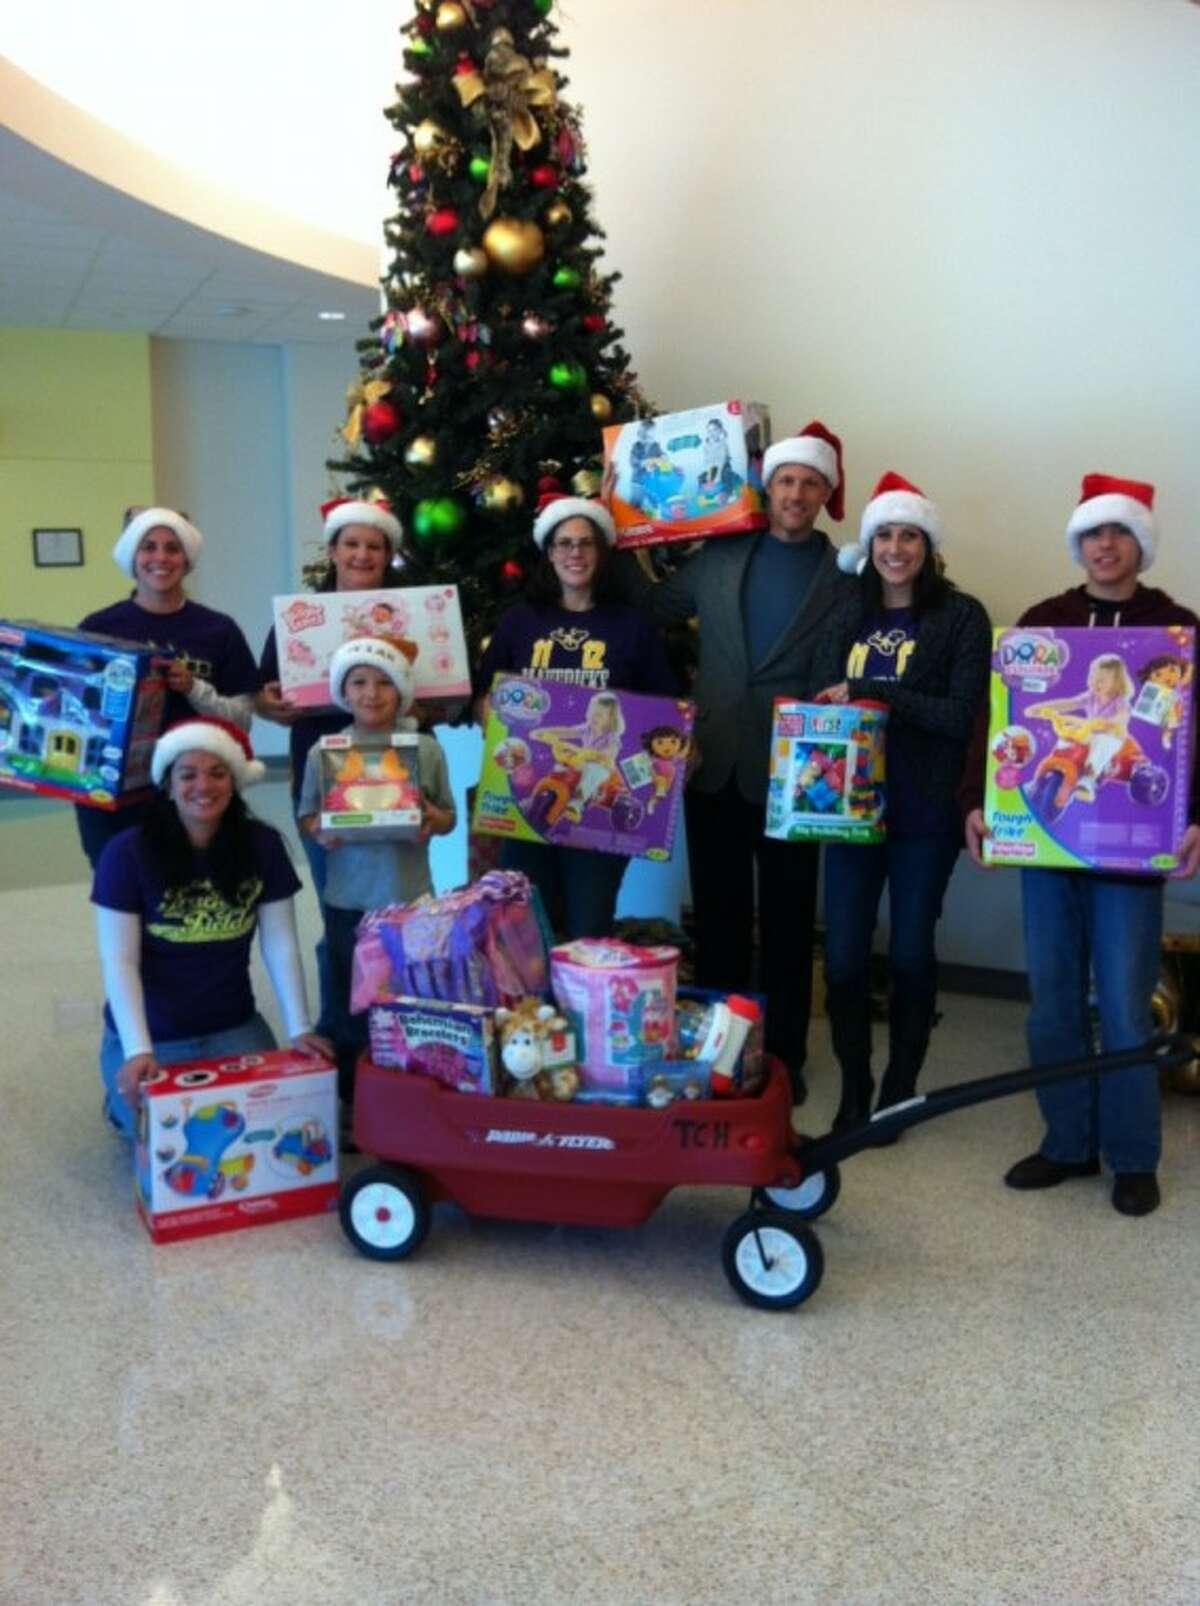 Morton Ranch Junior High language arts teachers Sara Brownlee (kneeling on floor), Kristin Bell, Kim Klingbeil, Piper Taylor, Mark McCord (school principal) and Rachel Tate, along with two students, delivered 416 toys donated by students for children fighting illnesses at Texas Children's Hospital West Campus.